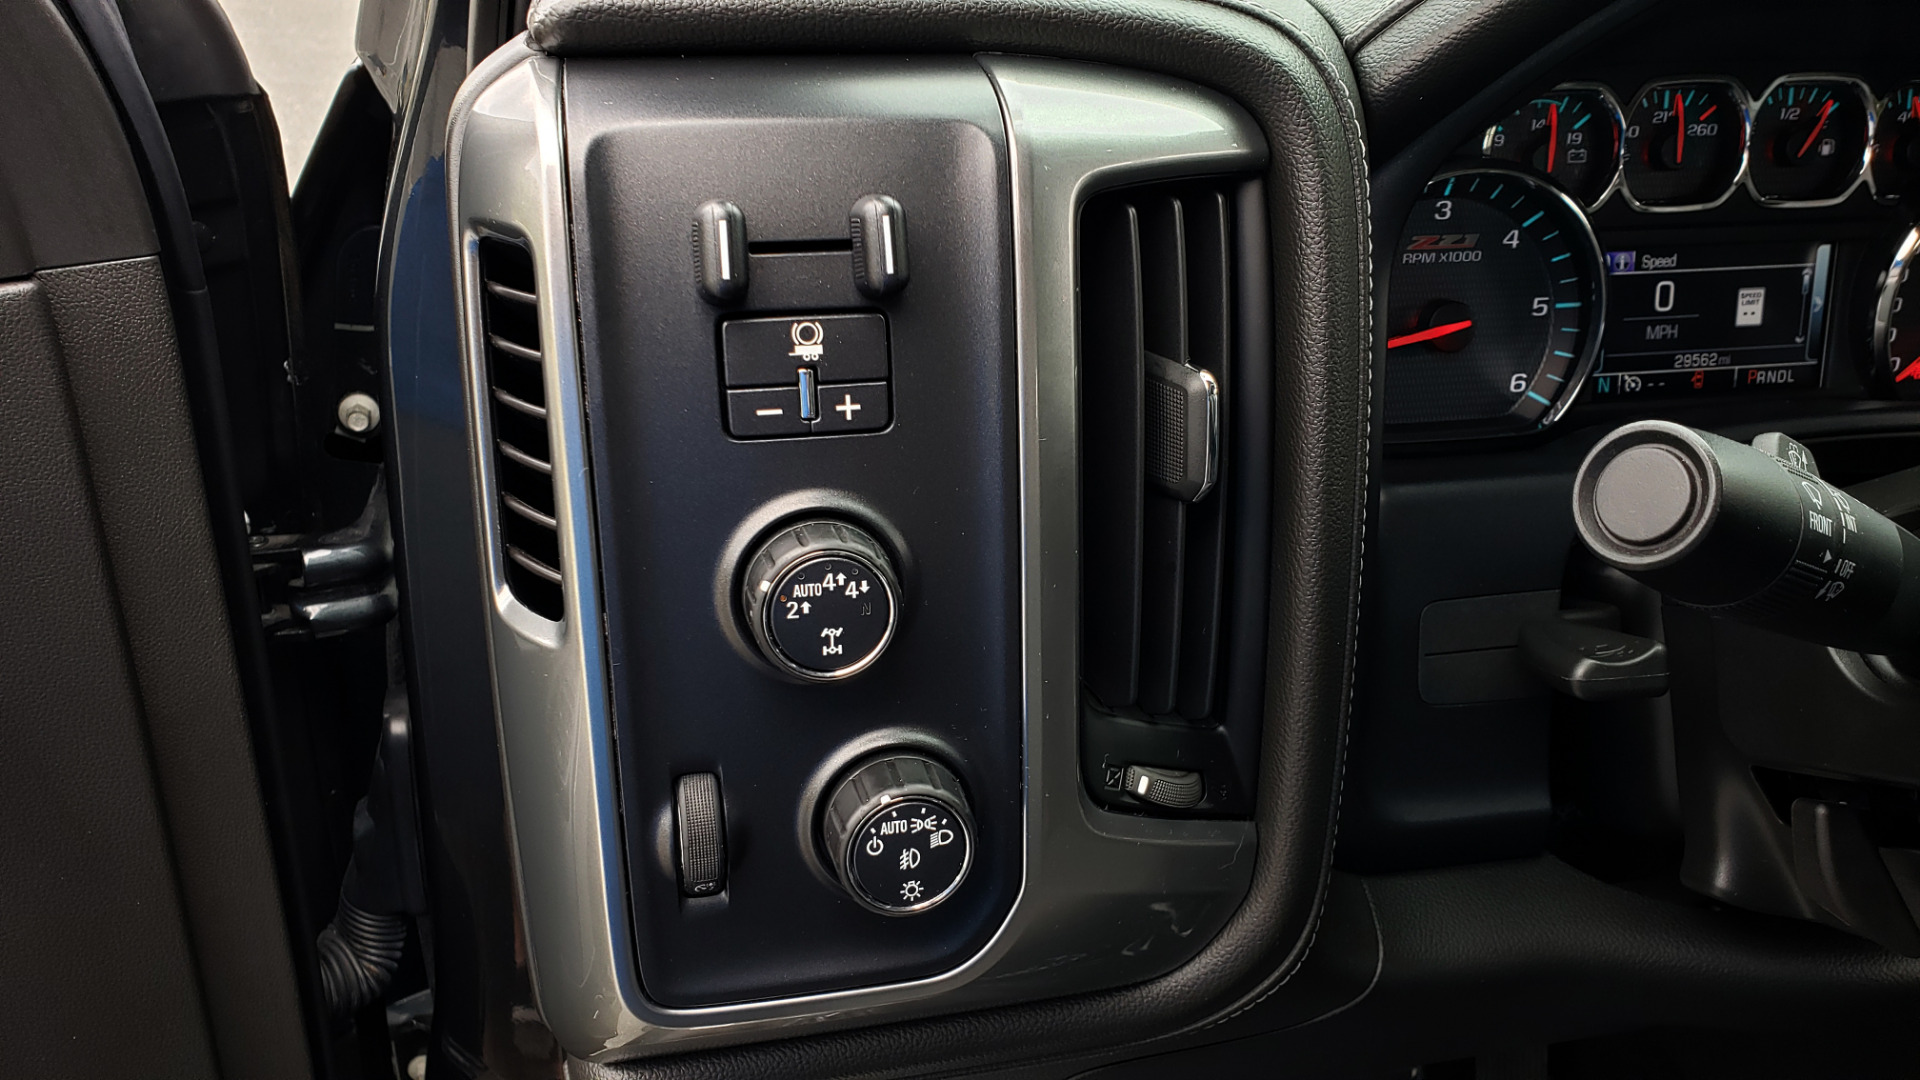 Used 2017 Chevrolet SILVERADO 1500 LTZ 4WD / NAV / BOSE / LEATHER / CAMERA / LOADED for sale Sold at Formula Imports in Charlotte NC 28227 52